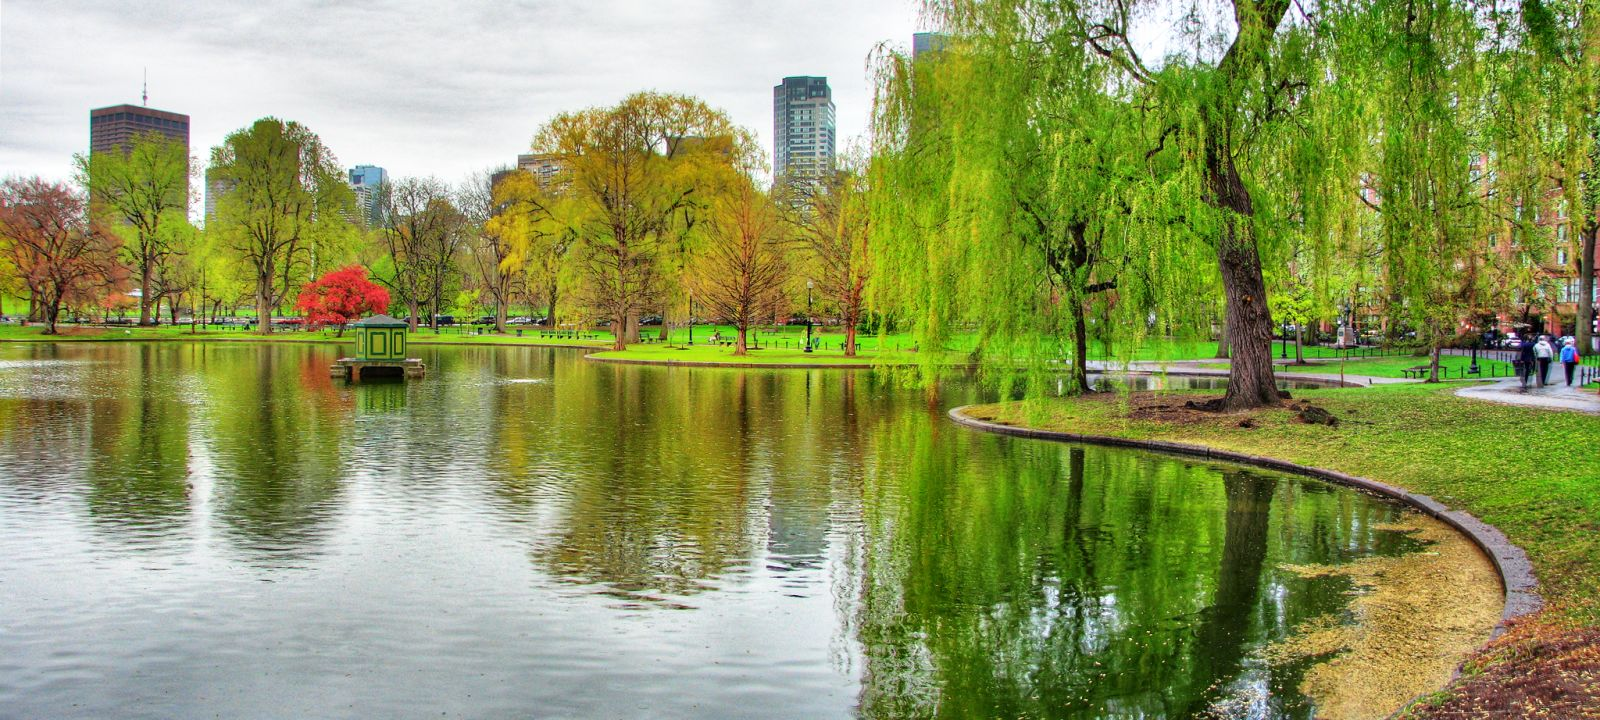 Boston Commons - A great place to hang out or relax, the Boston Commons is a popular spot for locals and tourists.